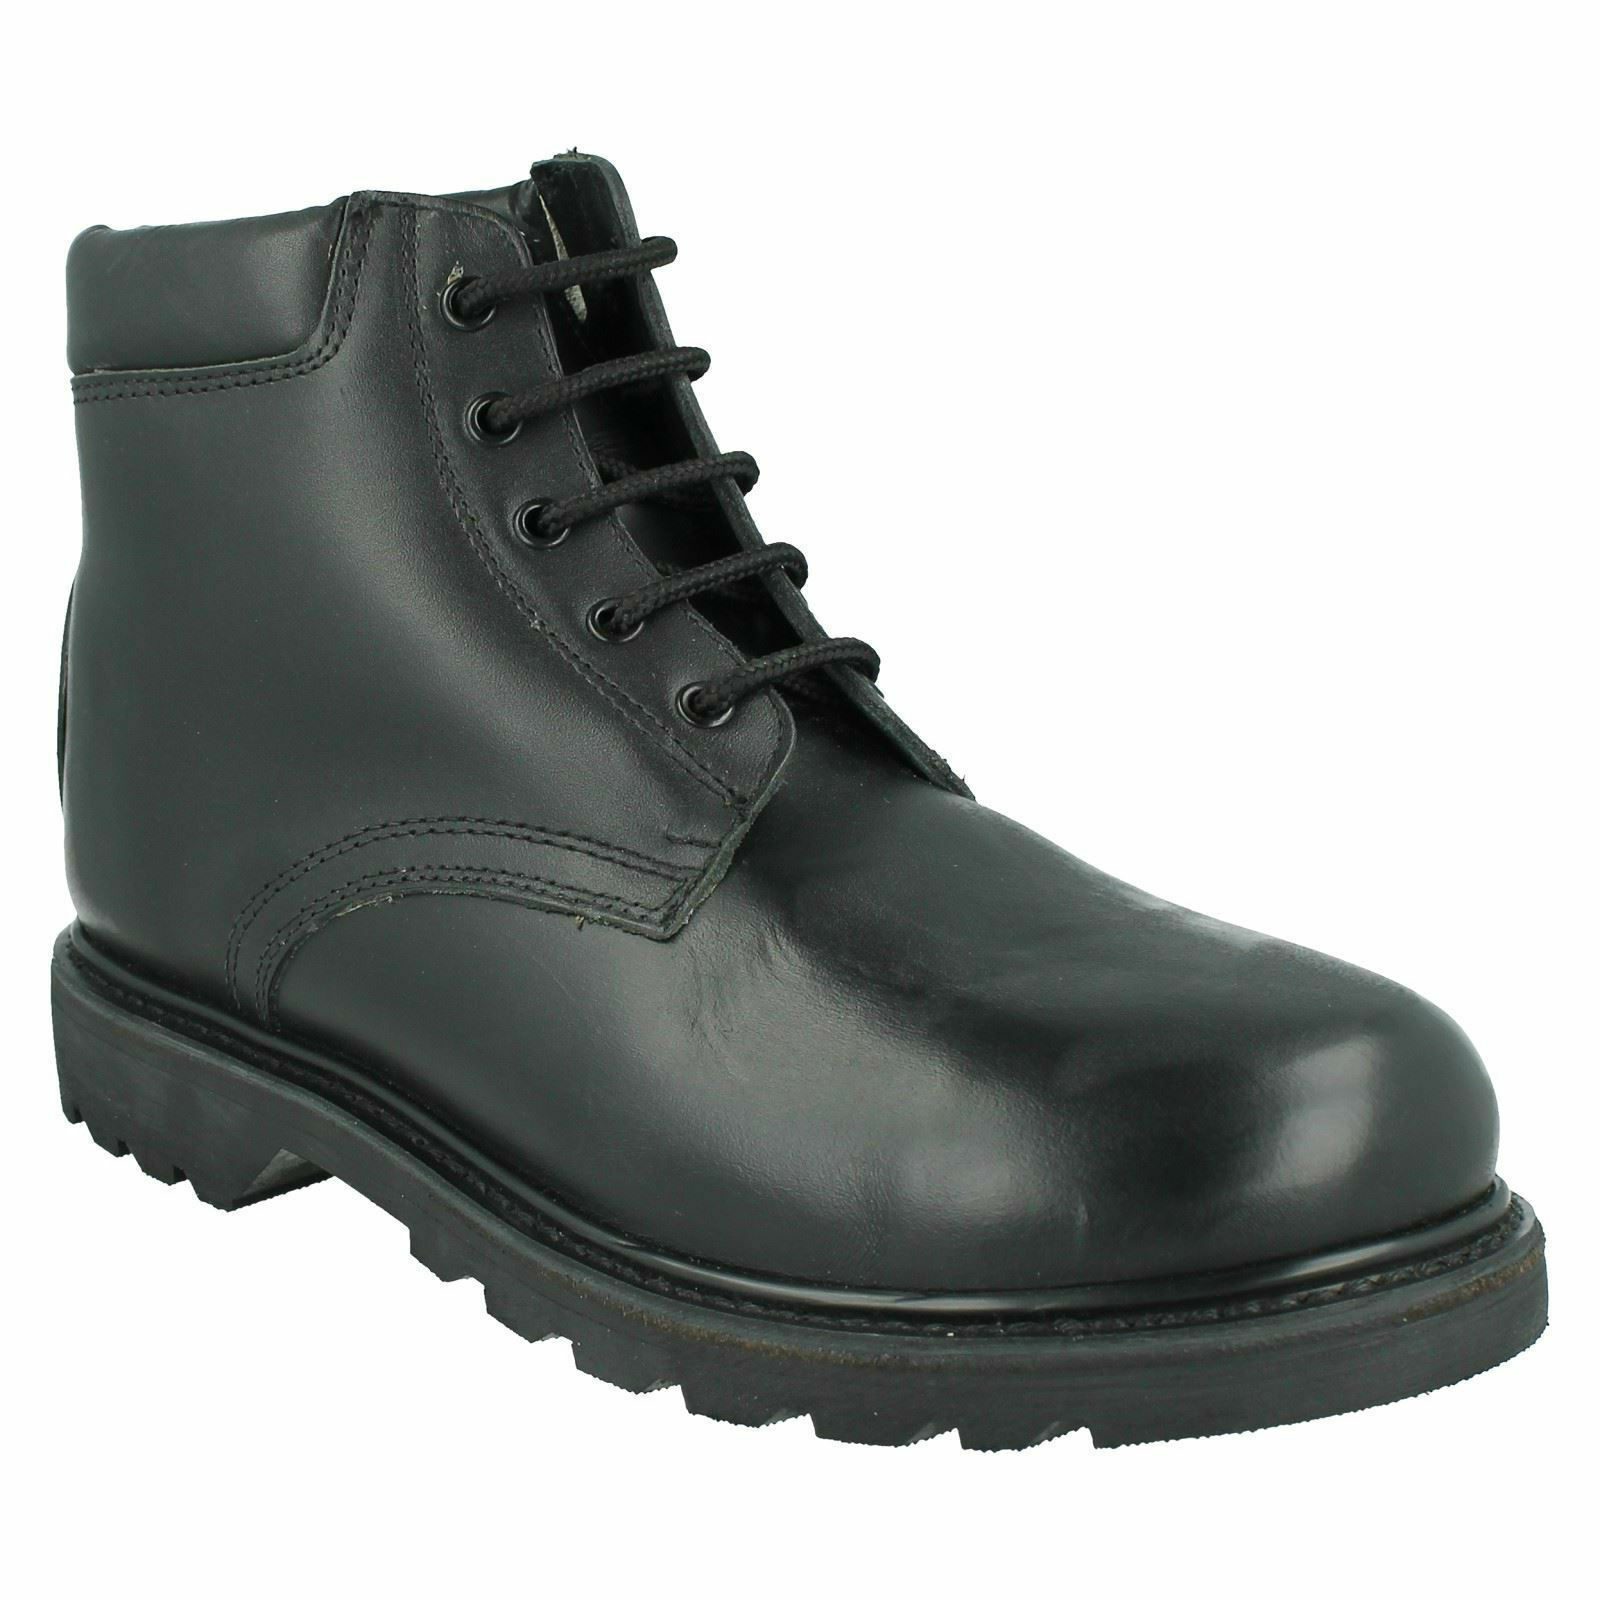 Hombre 84732 / 01514 LACE UP OIL RESISTANT CASUAL WORK WORK WORK WINTER LEATHER ANKLE botas ba5cee